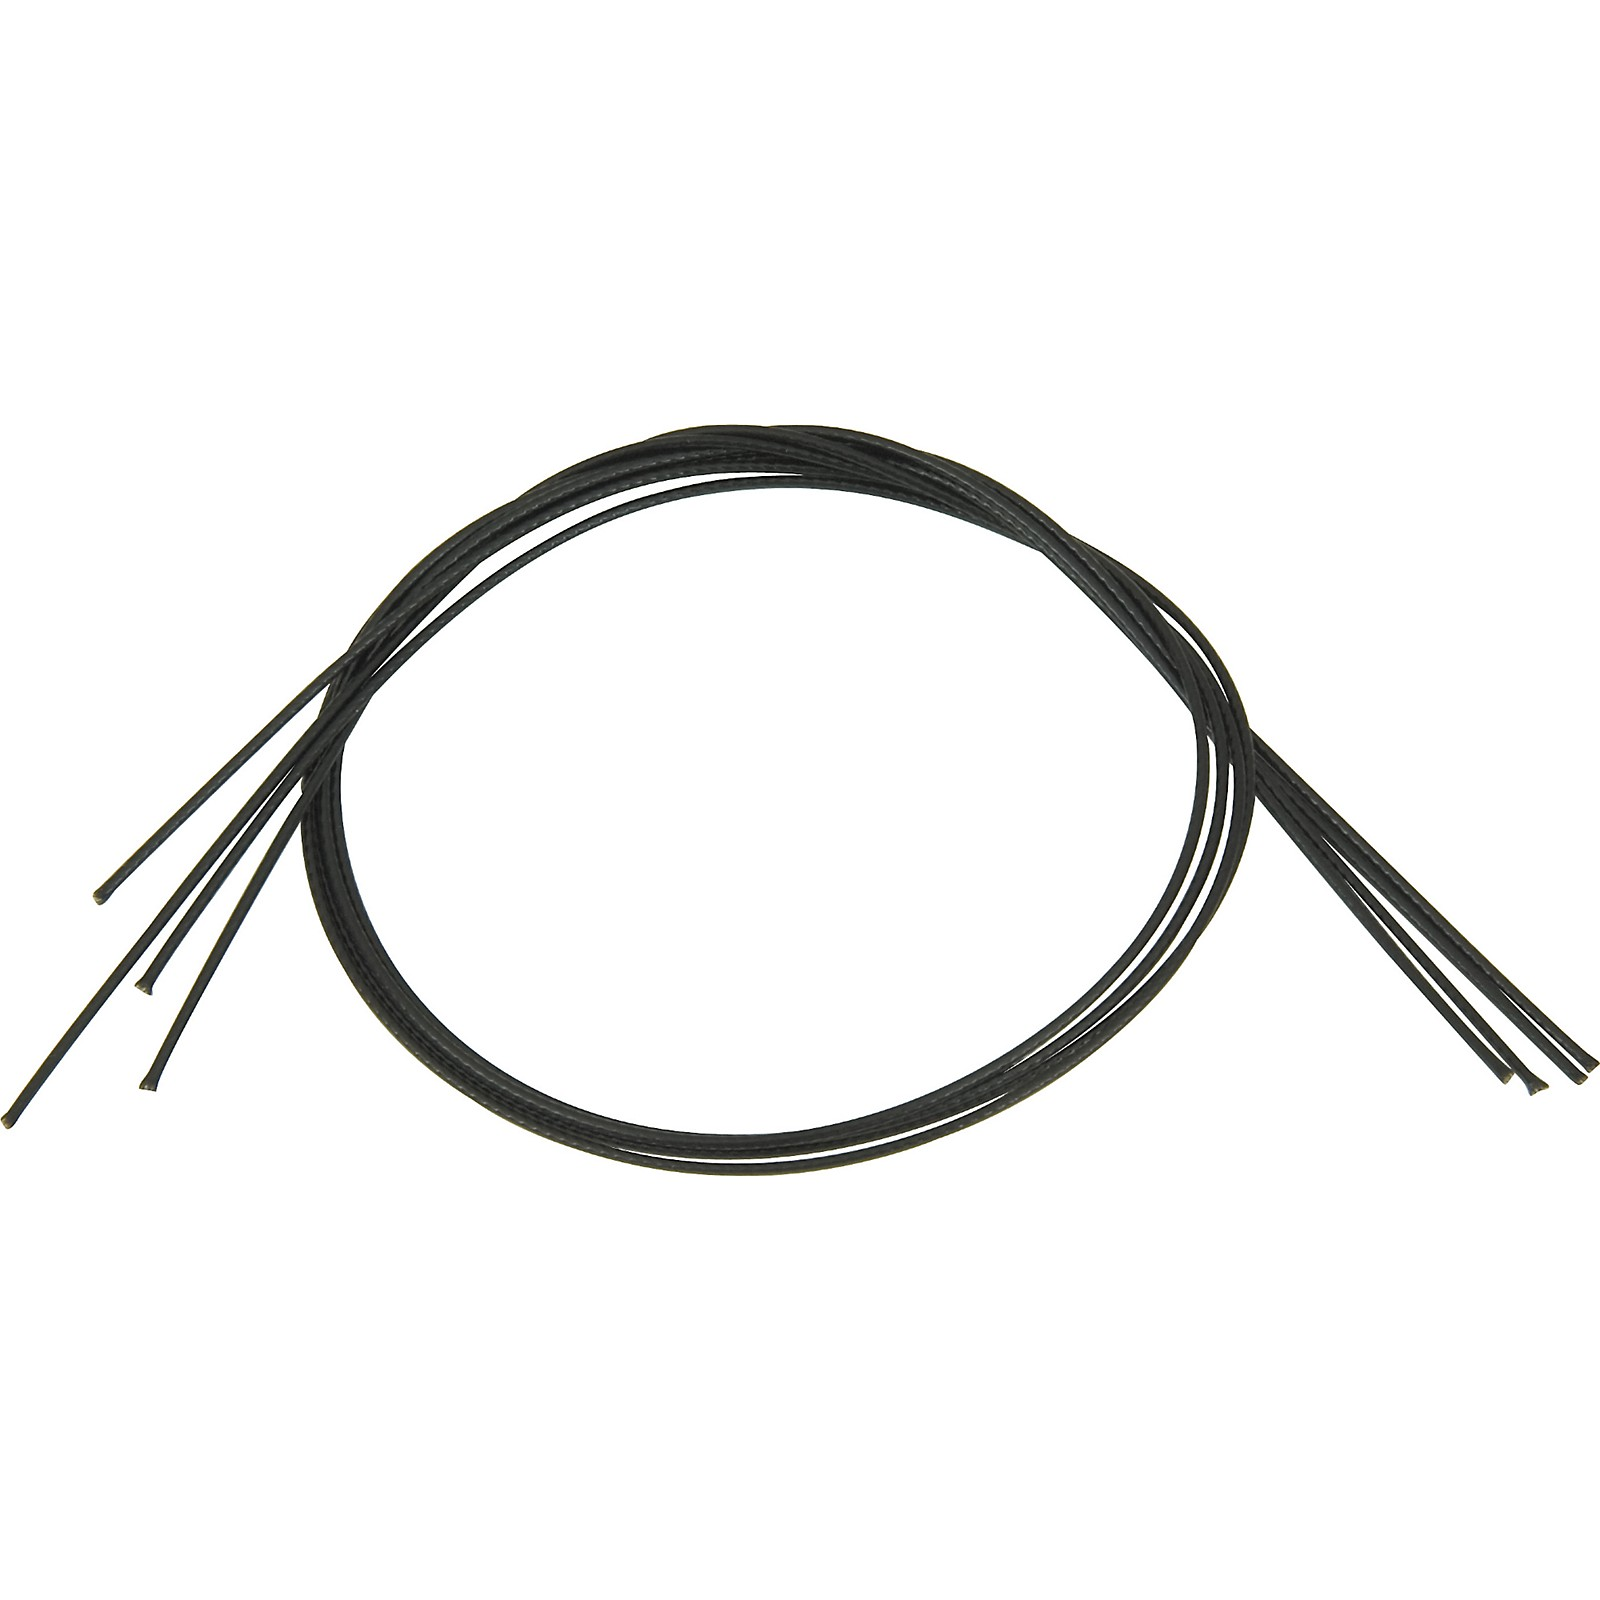 Trick Drums Snare Drum Cord